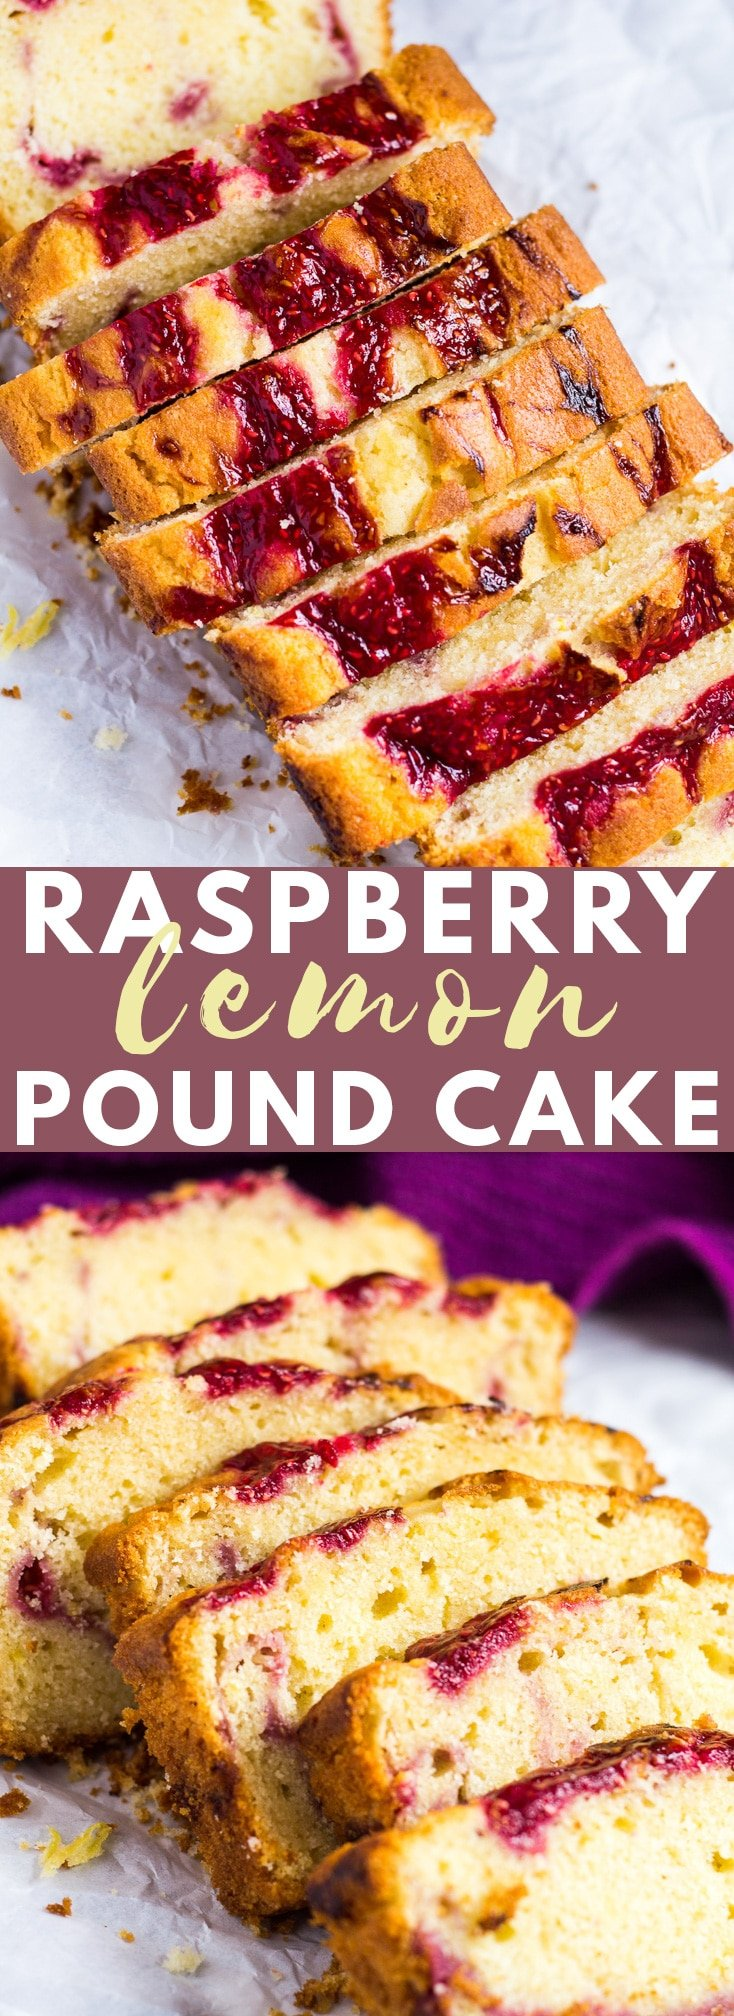 Raspberry Swirl Lemon Pound Cake - Incredibly moist and fluffy lemon-infused pound cake swirled with a fresh raspberry sauce! #raspberry #lemon #poundcake #cakerecipes